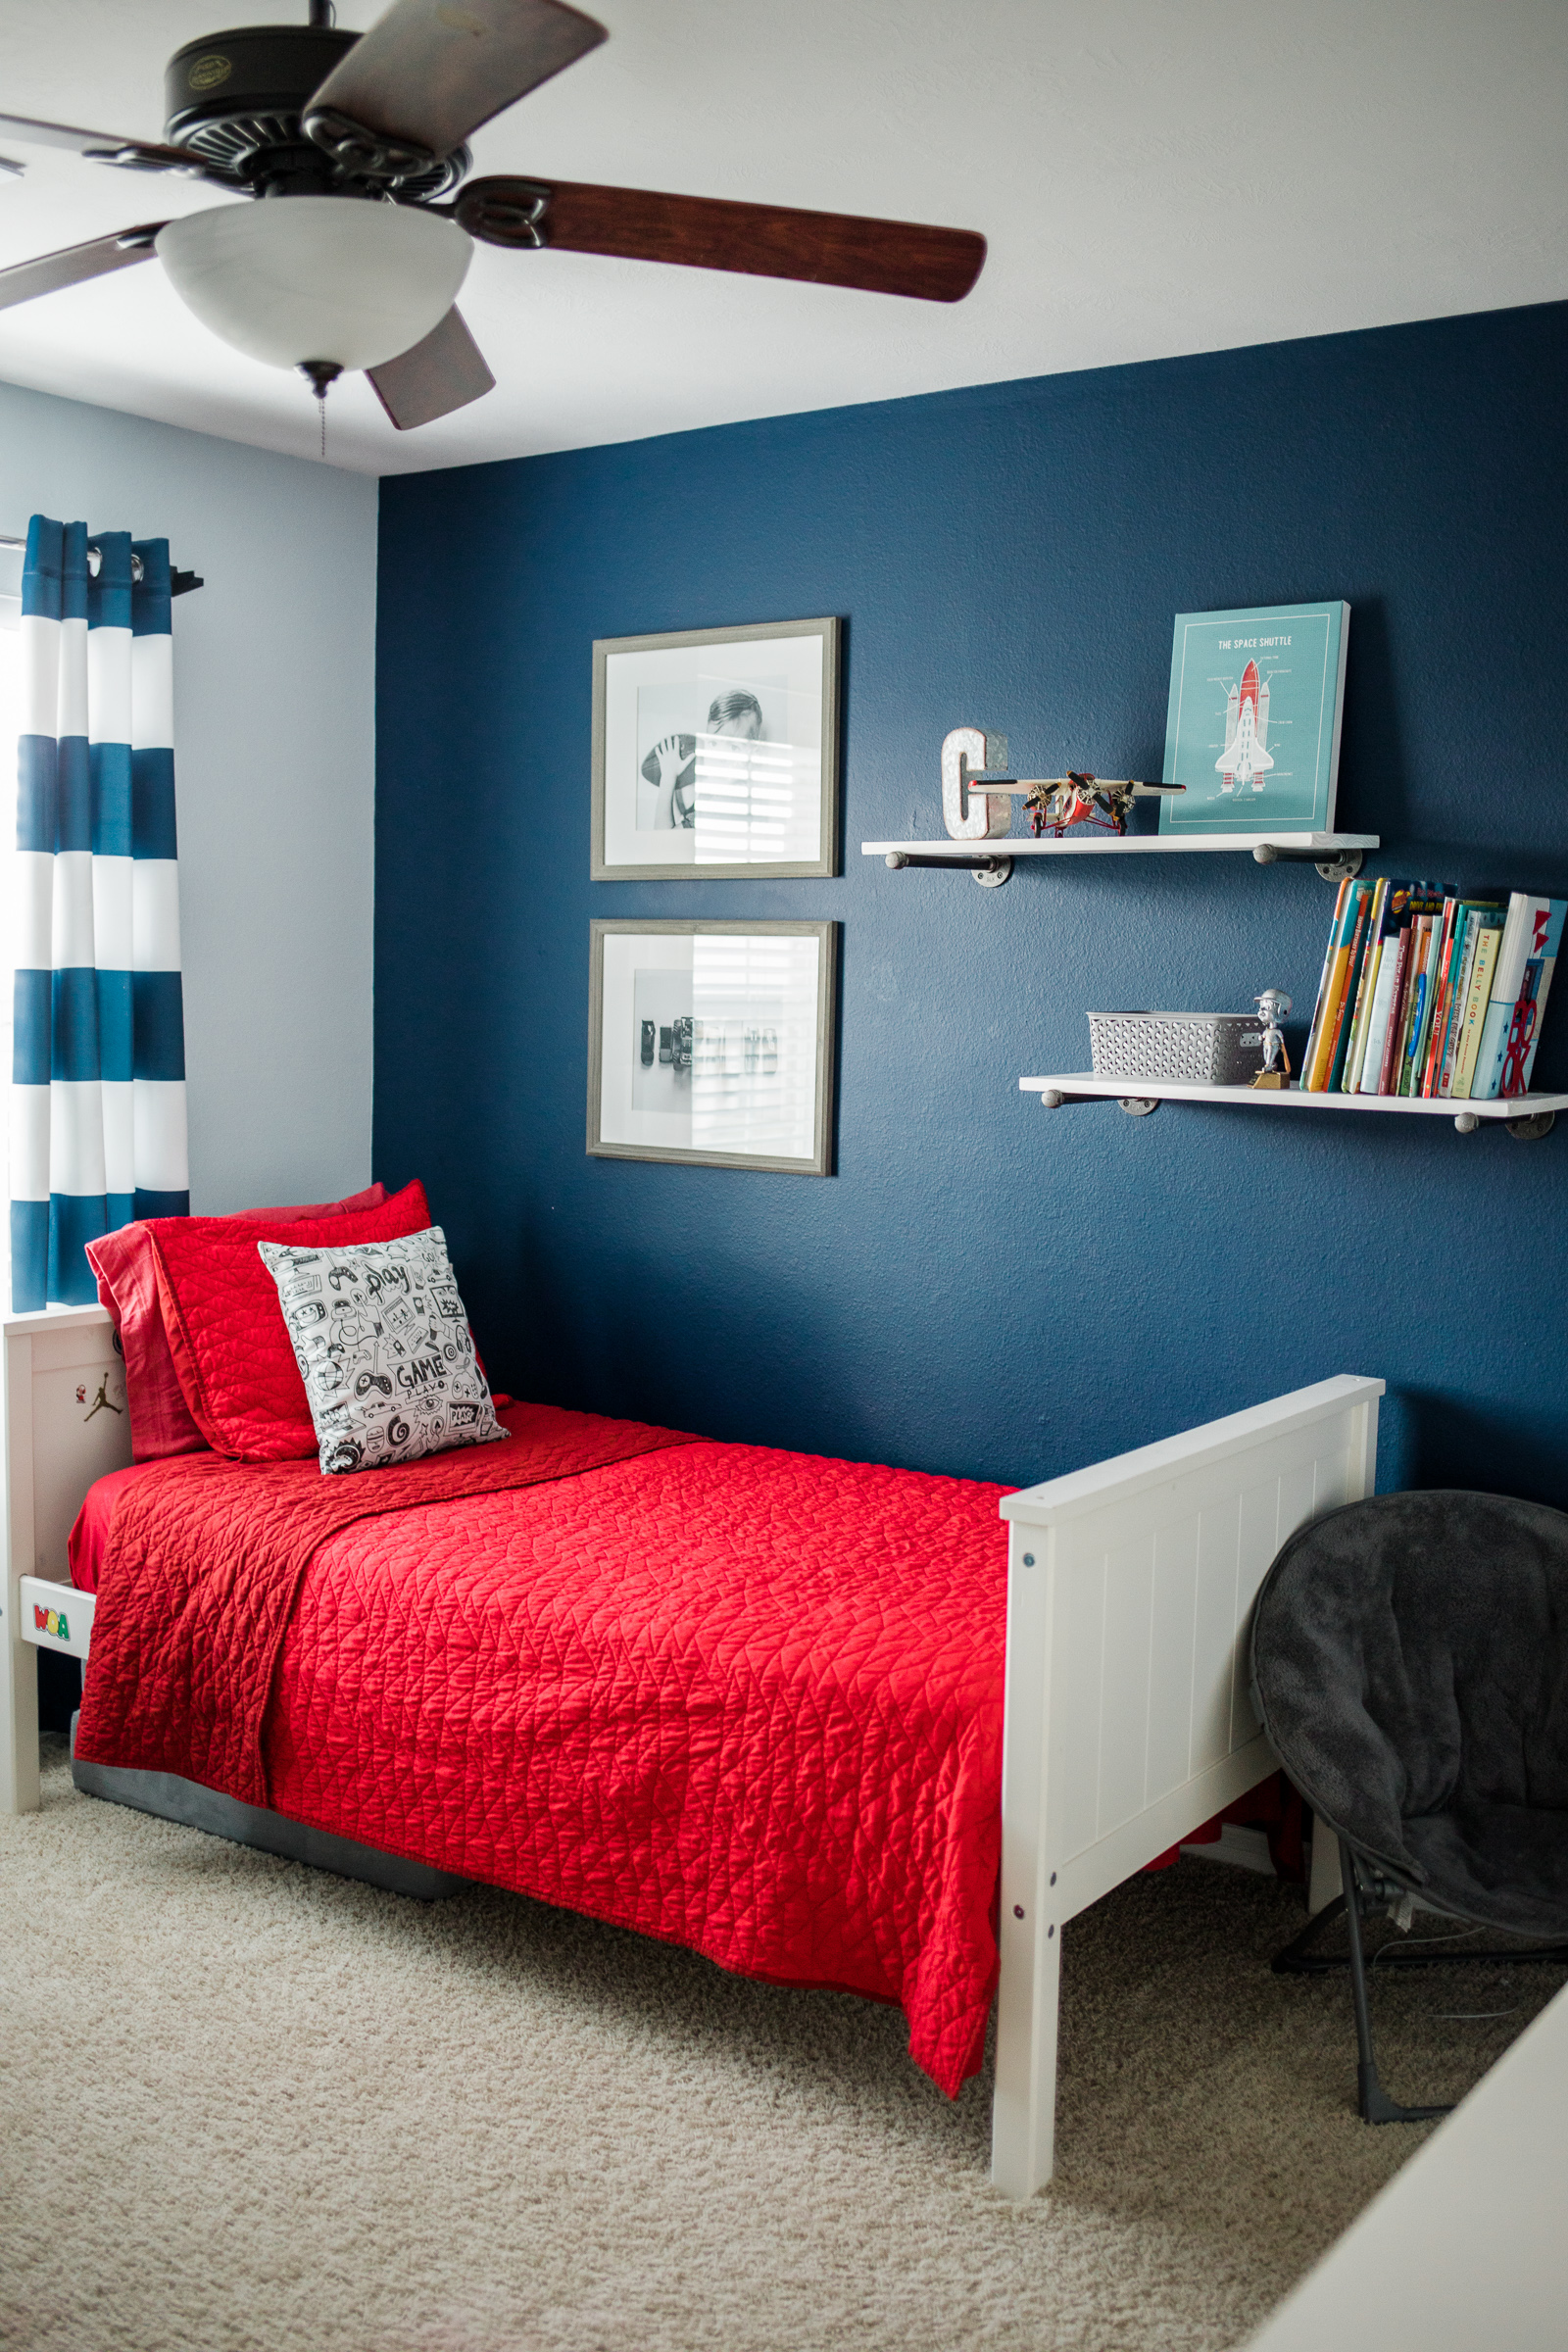 Shared Room Ideas For Boys Uptown With Elly Brown